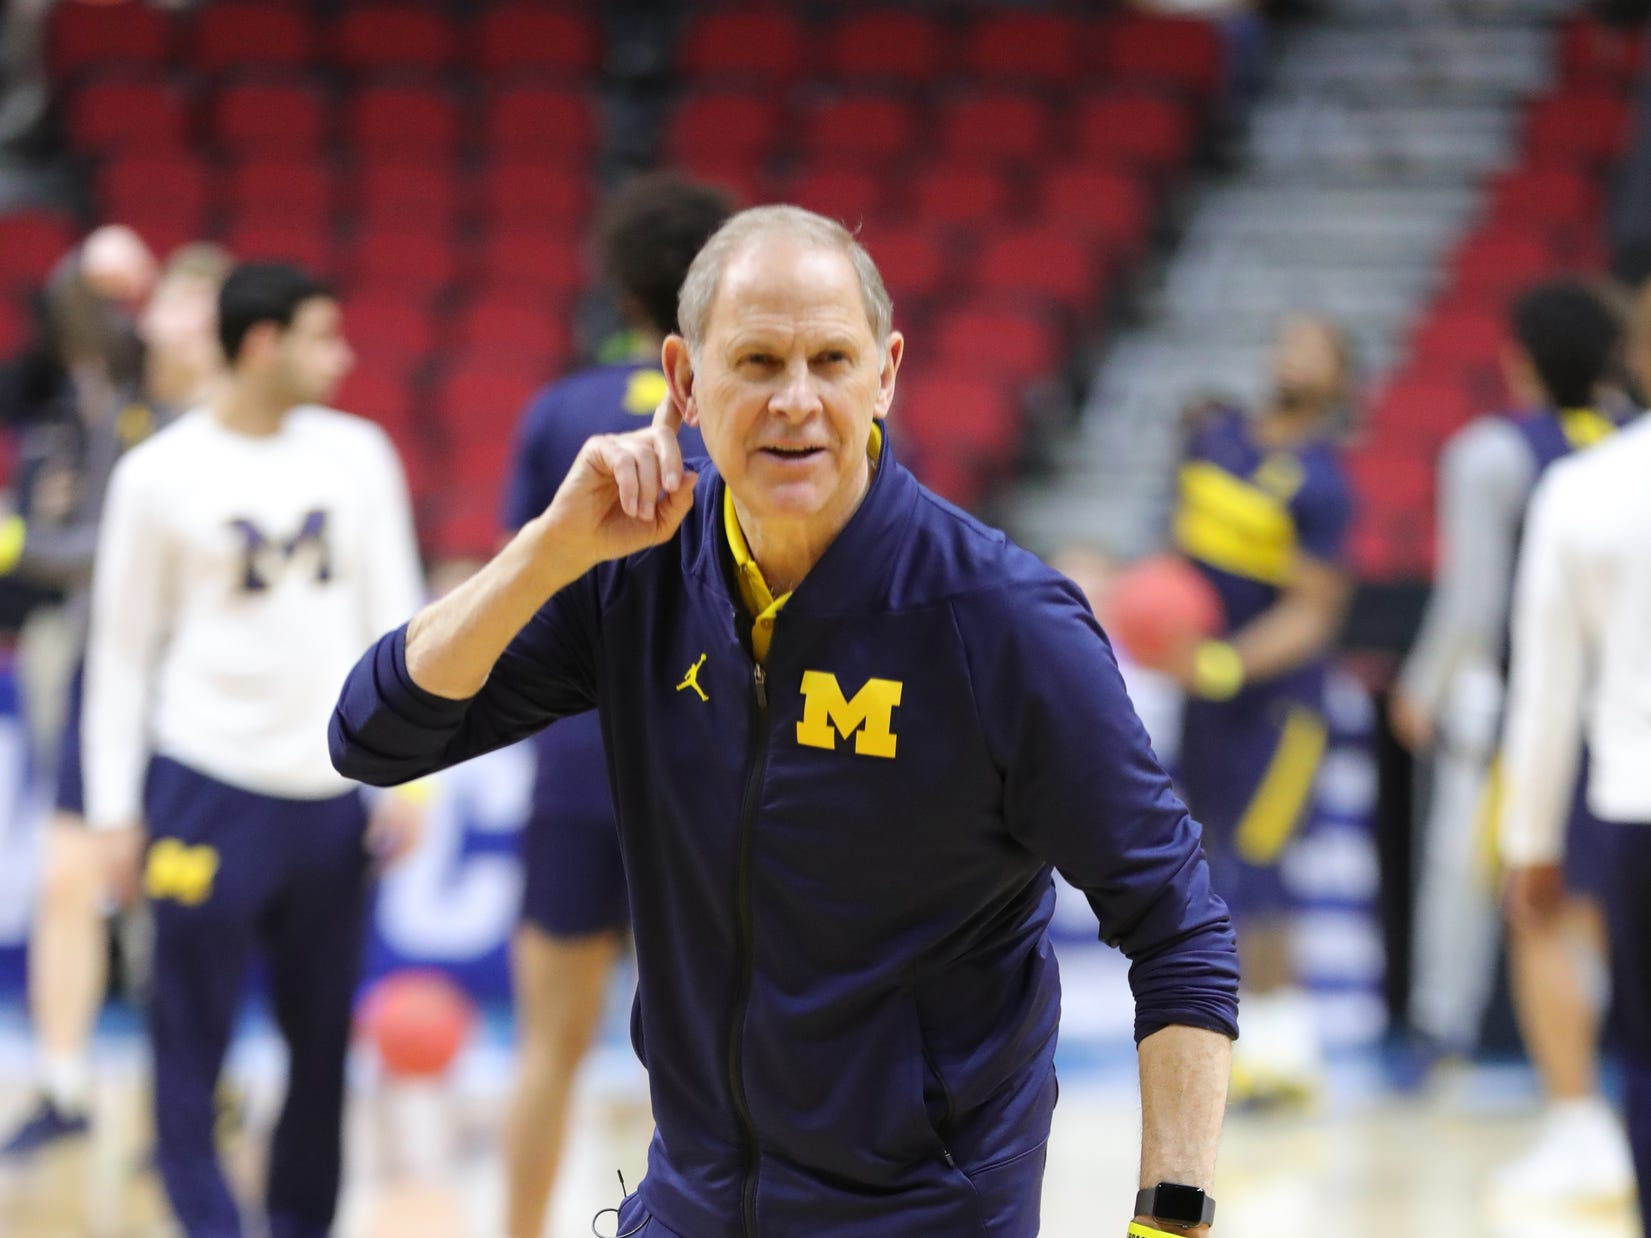 Michigan head coach John Beilein watches his team practice for their first round NCAA Tournament game against Montana Wednesday, March 20, 2019 at Wells Fargo Arena in Des Moines, Iowa.